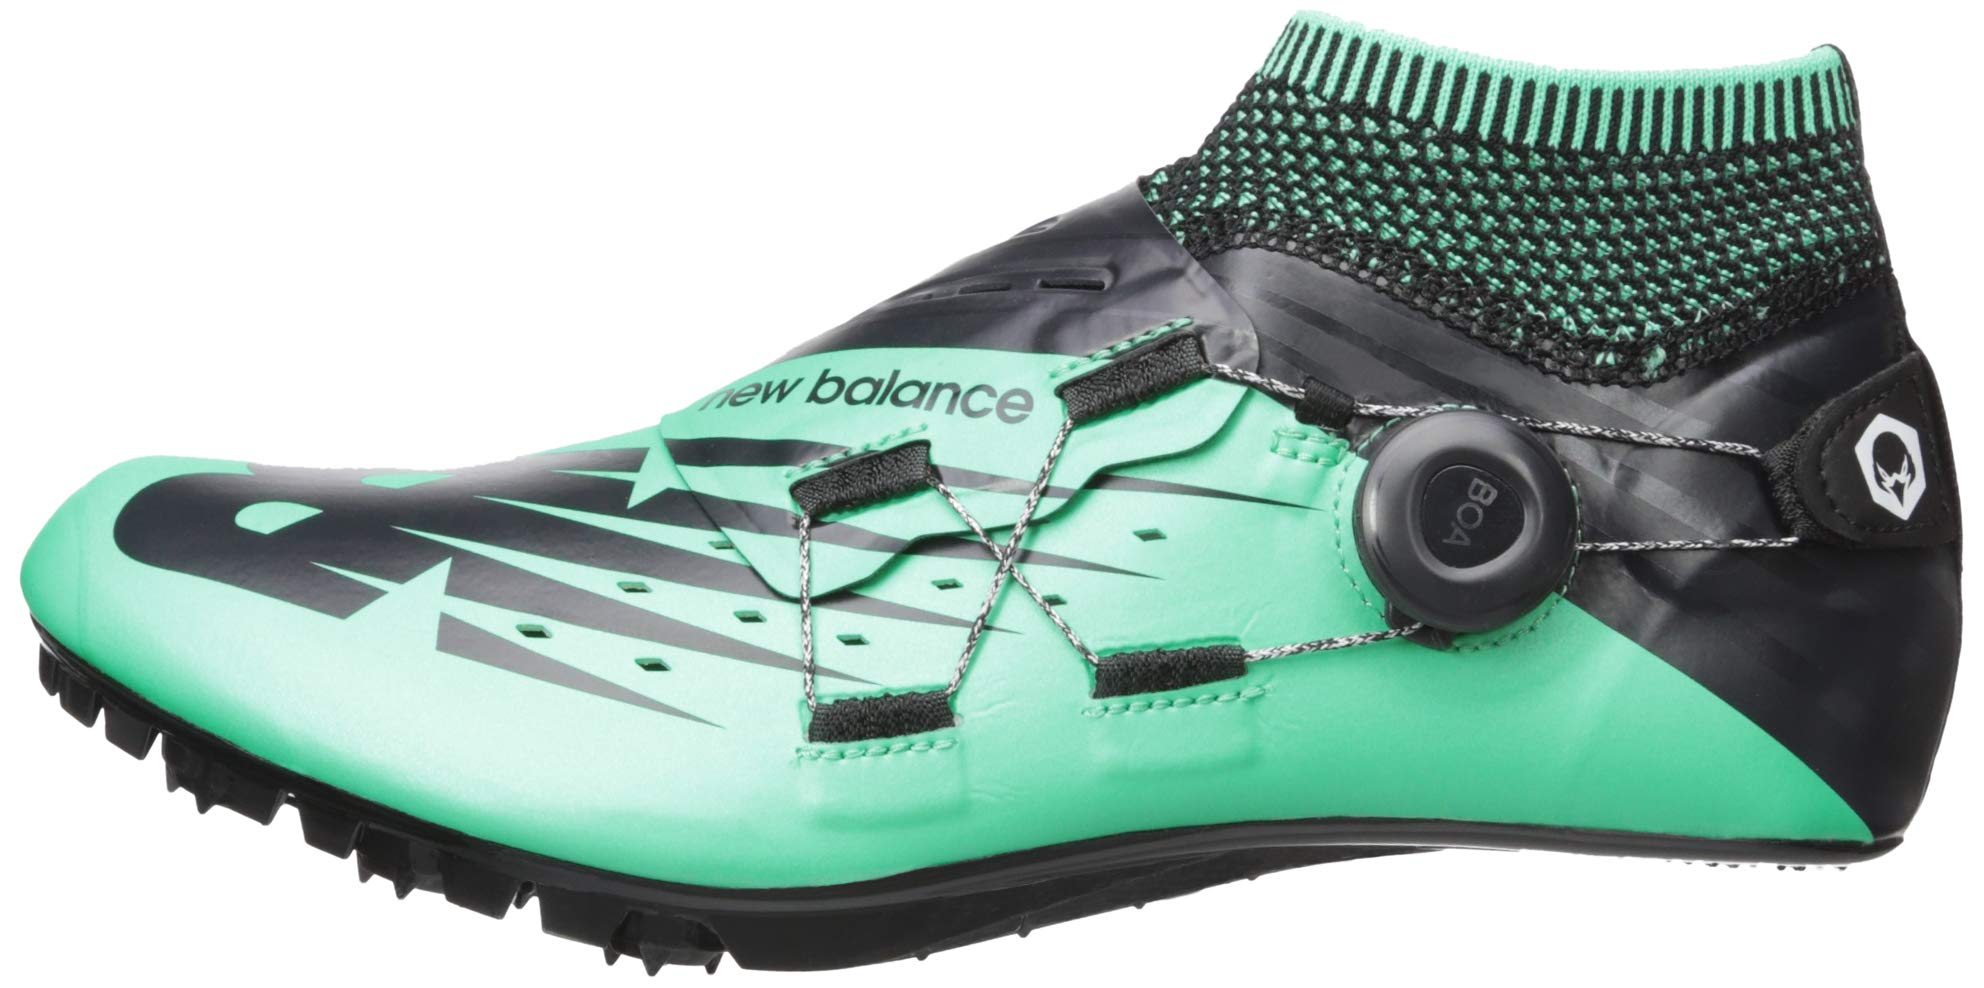 New Balance Men's Sigma V2 Vazee Track Shoe neon Emerald/Black 6 D US by New Balance (Image #5)